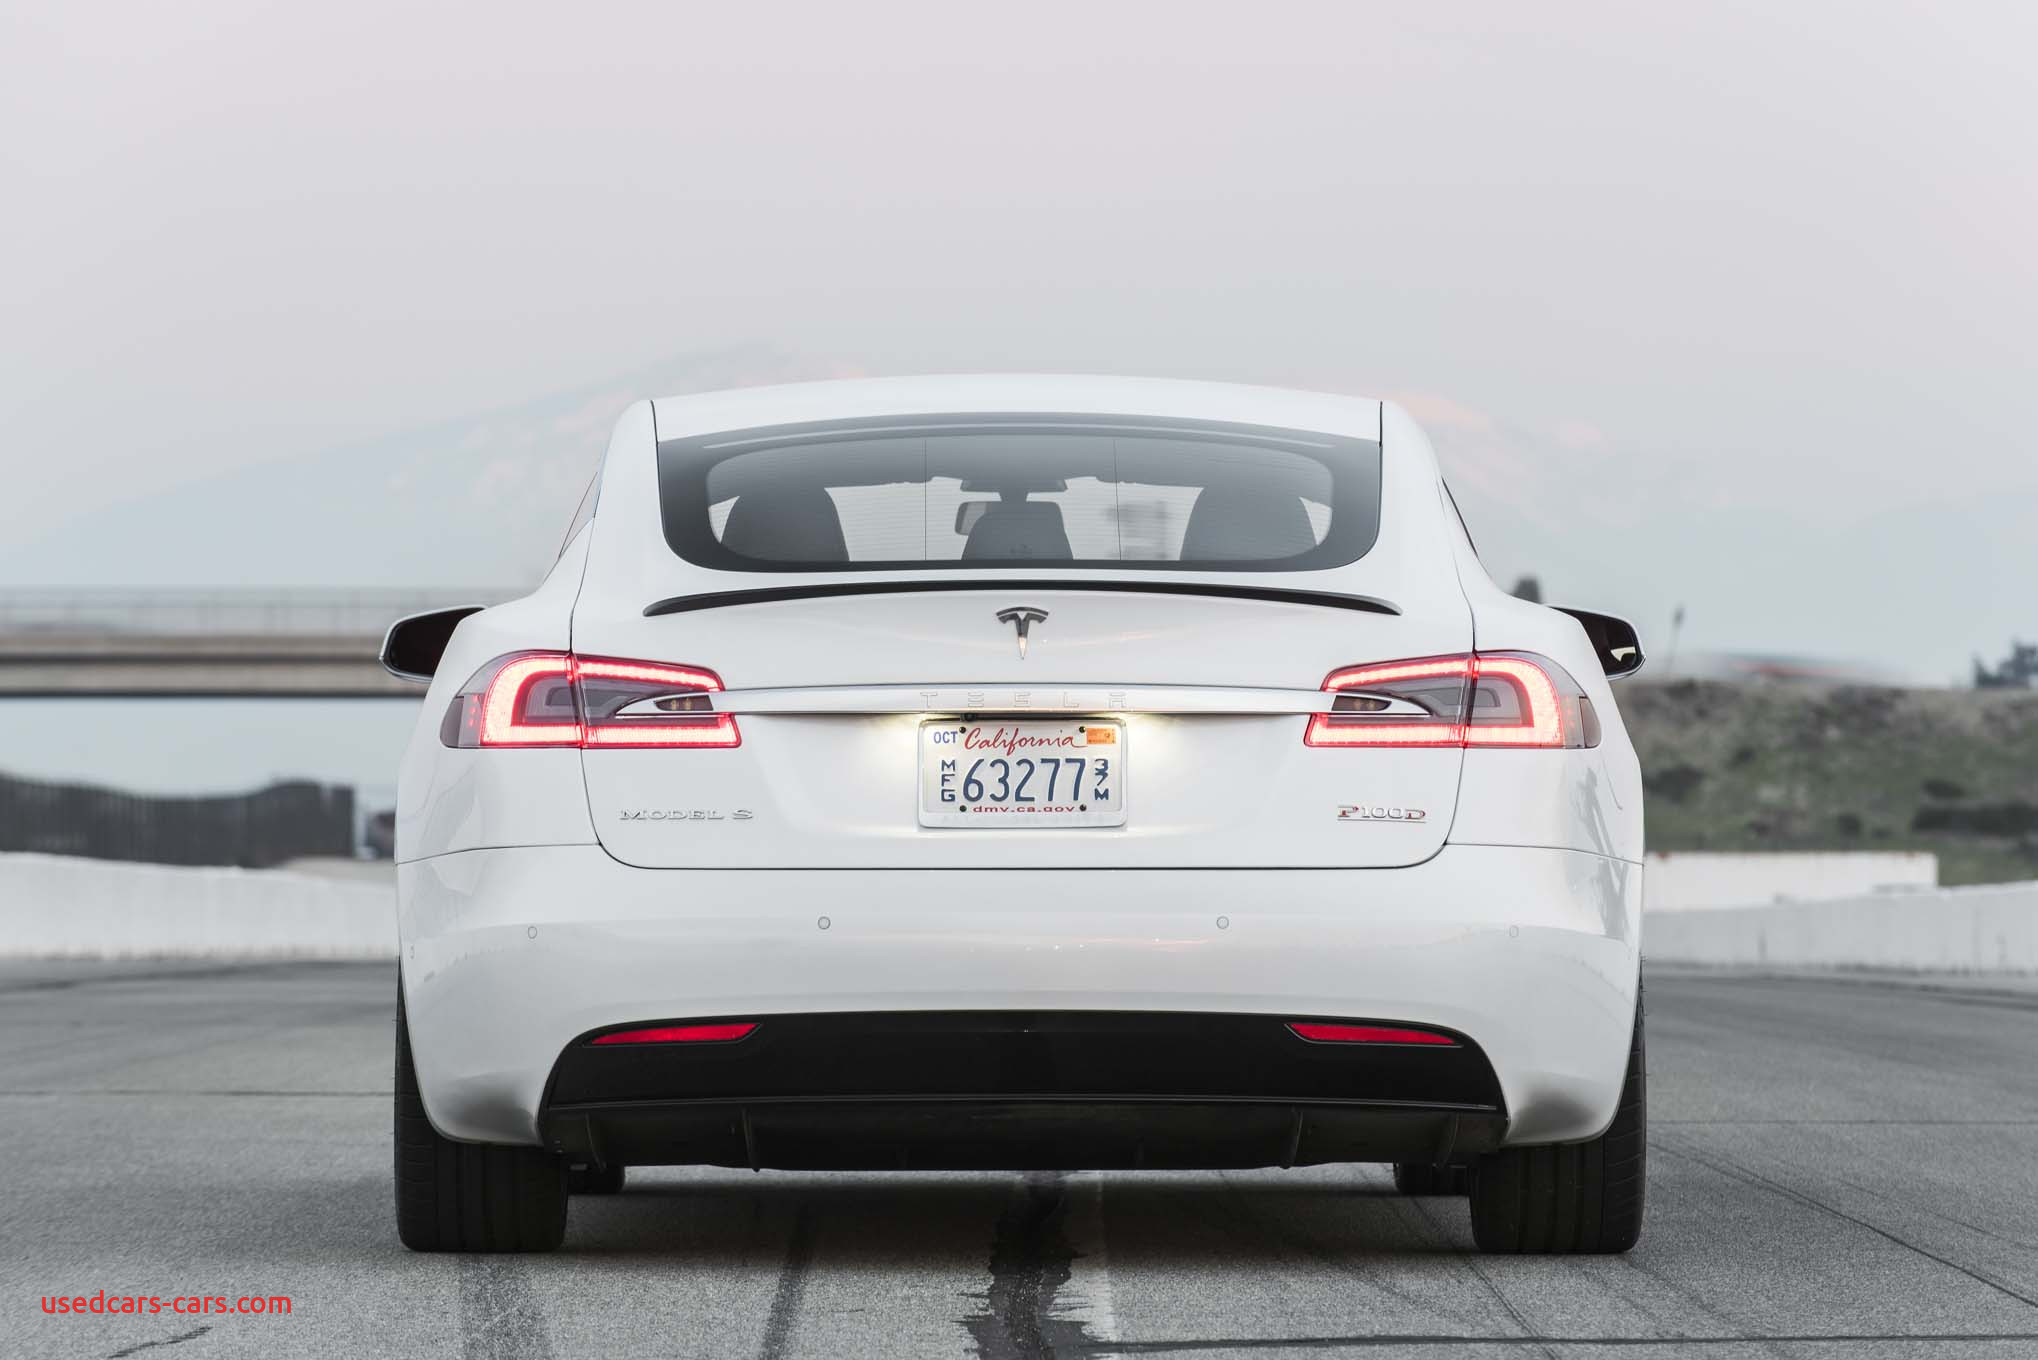 Tesla Auto Insurance New A Closer Look at the 2017 Tesla Model S P100d S Ludicrous